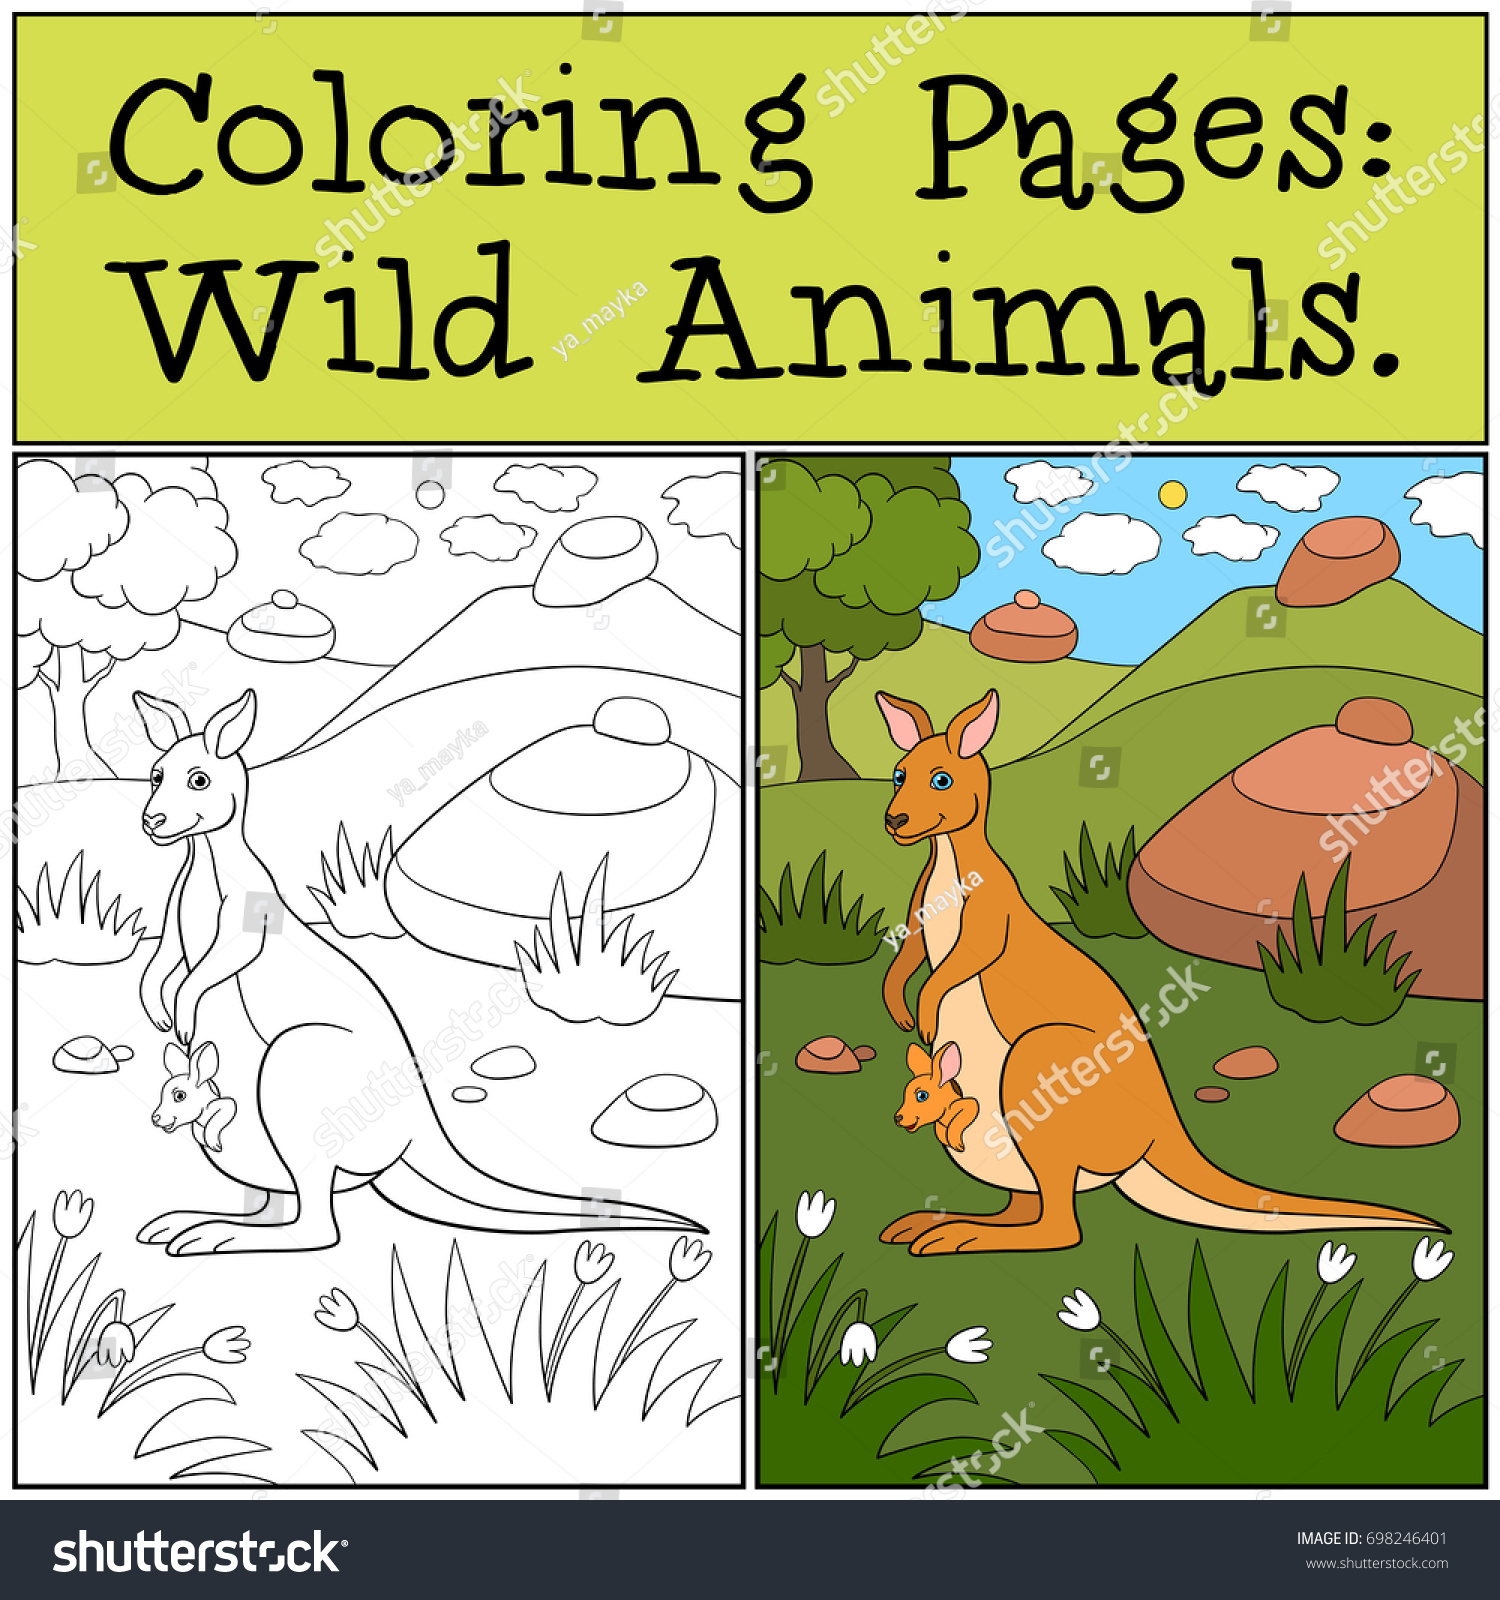 Coloring Pages Wild Animals Mother Kangaroo Stock Vector 698246401 ...